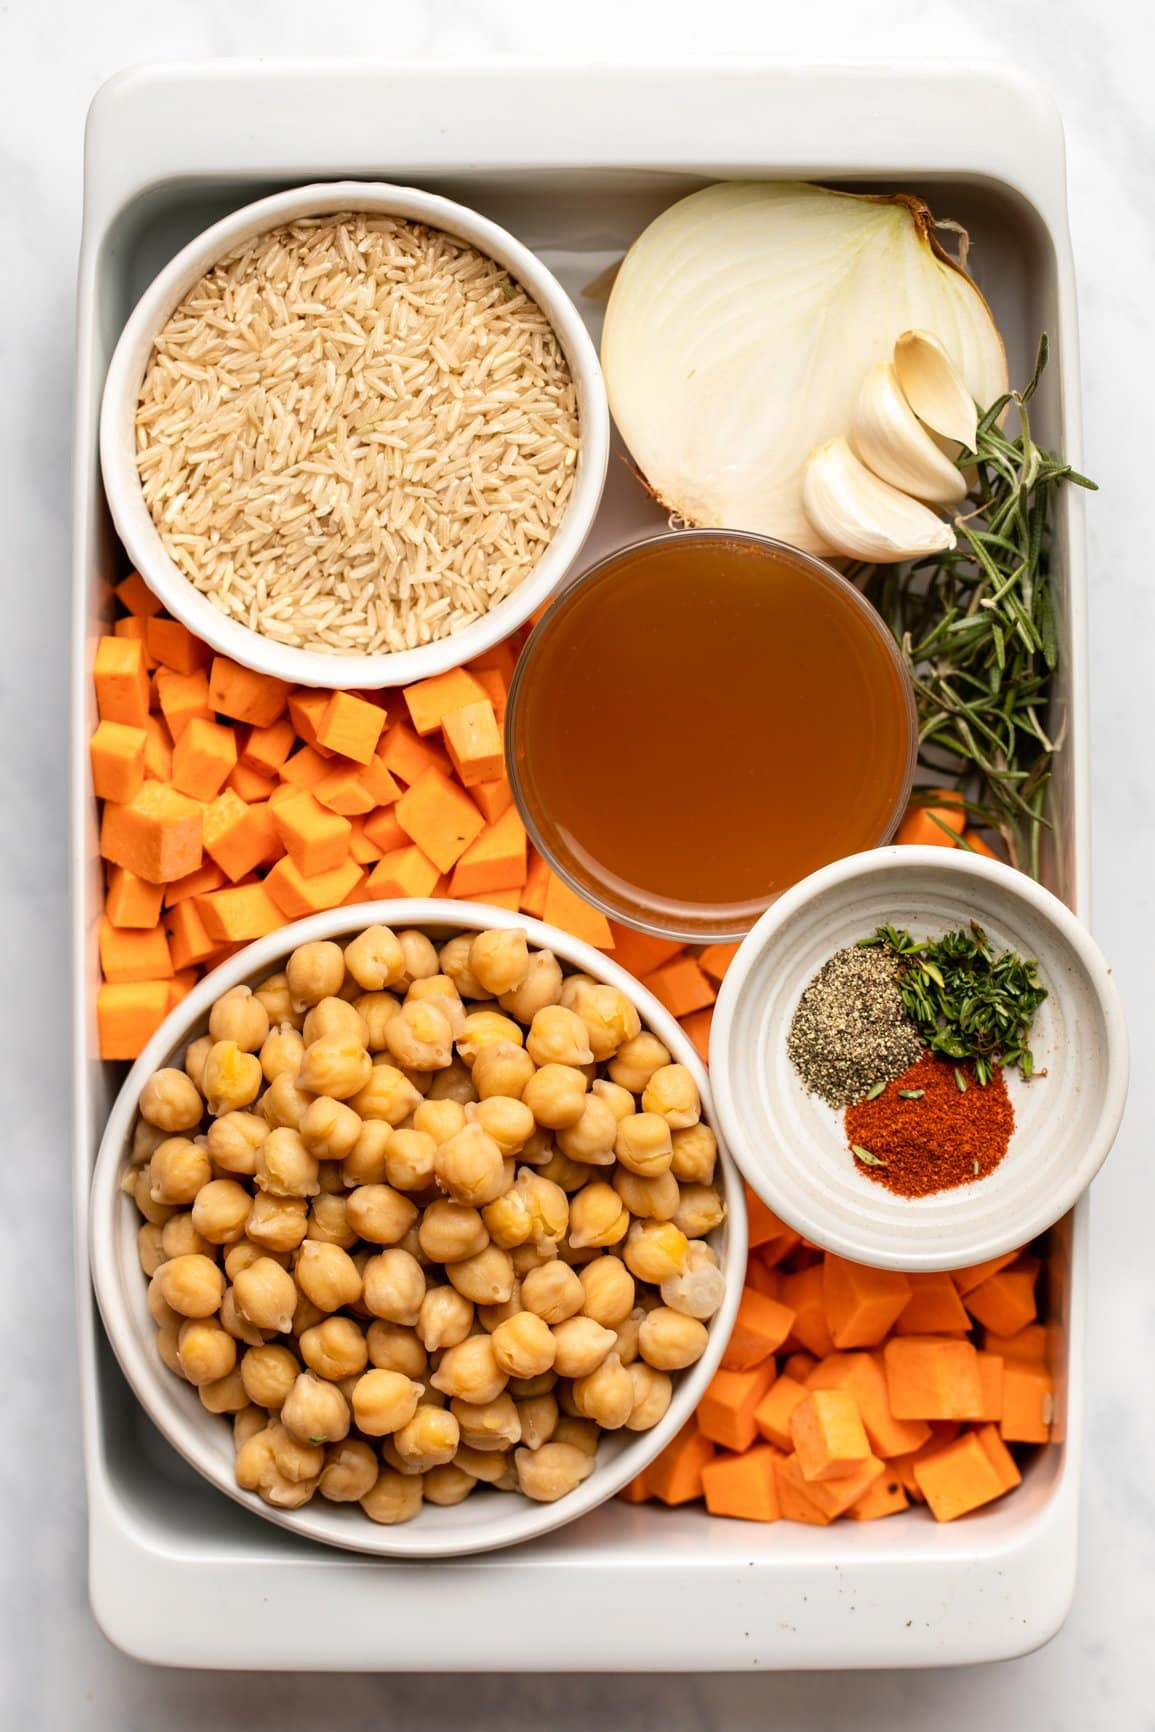 ingredients for sweet potato rosemary casserole arranged inside of casserole dish in small white dishes